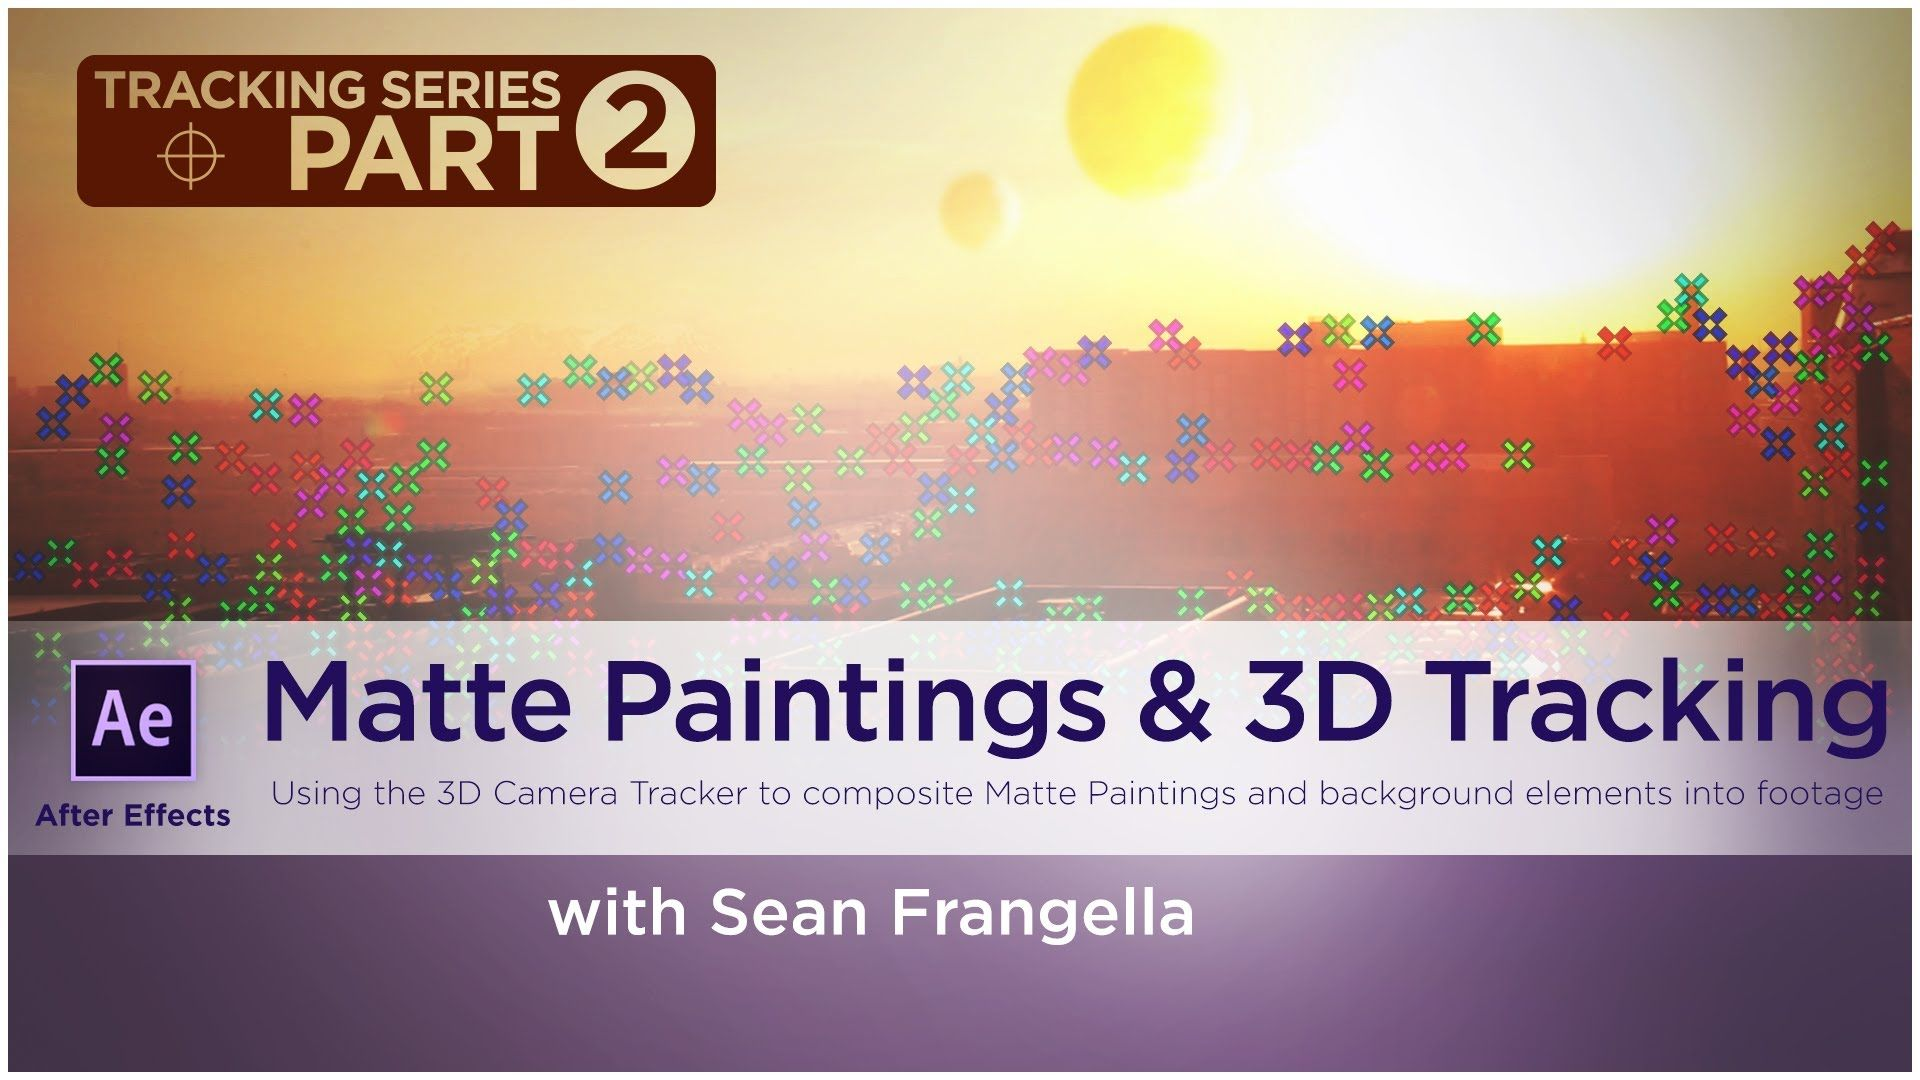 After Effects 3d Camera Tracker To Composite Matte Paintings